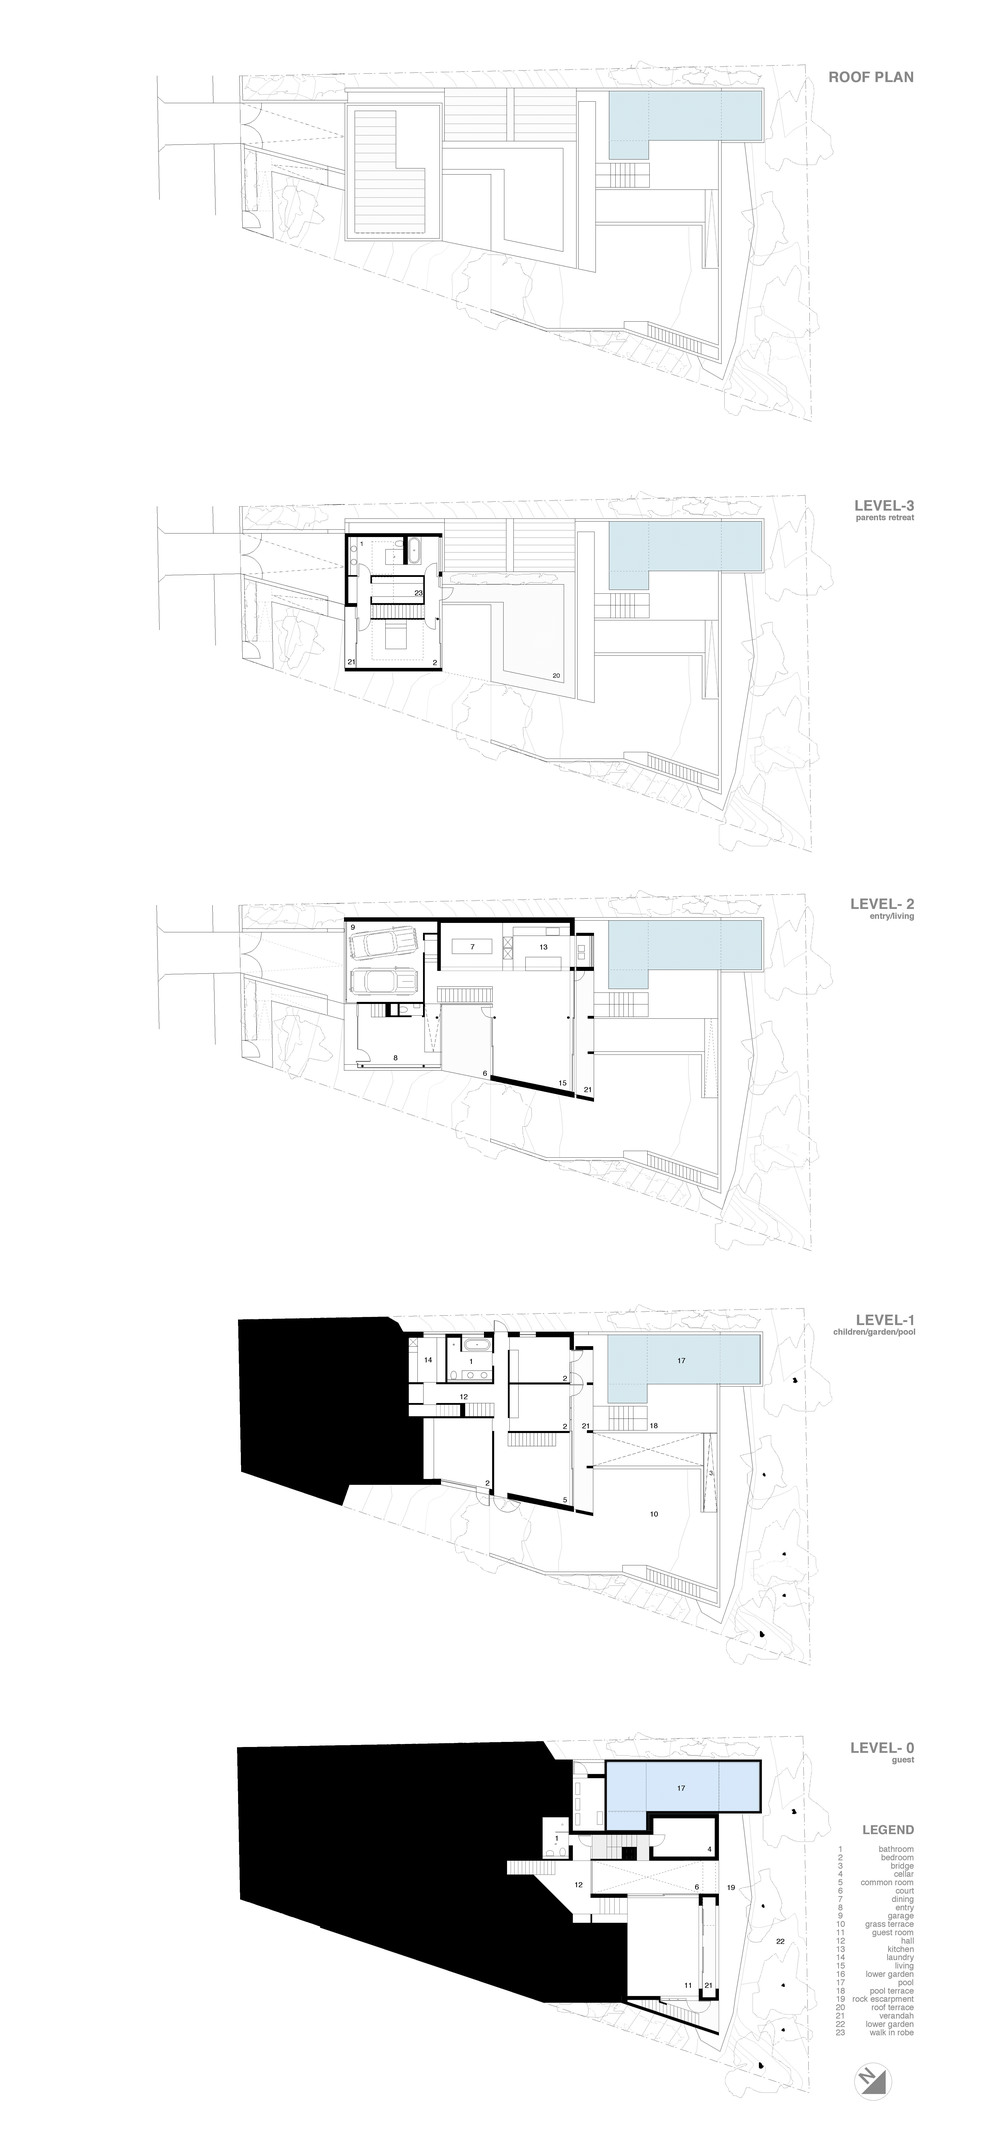 cremorne drawings PLANS.jpg